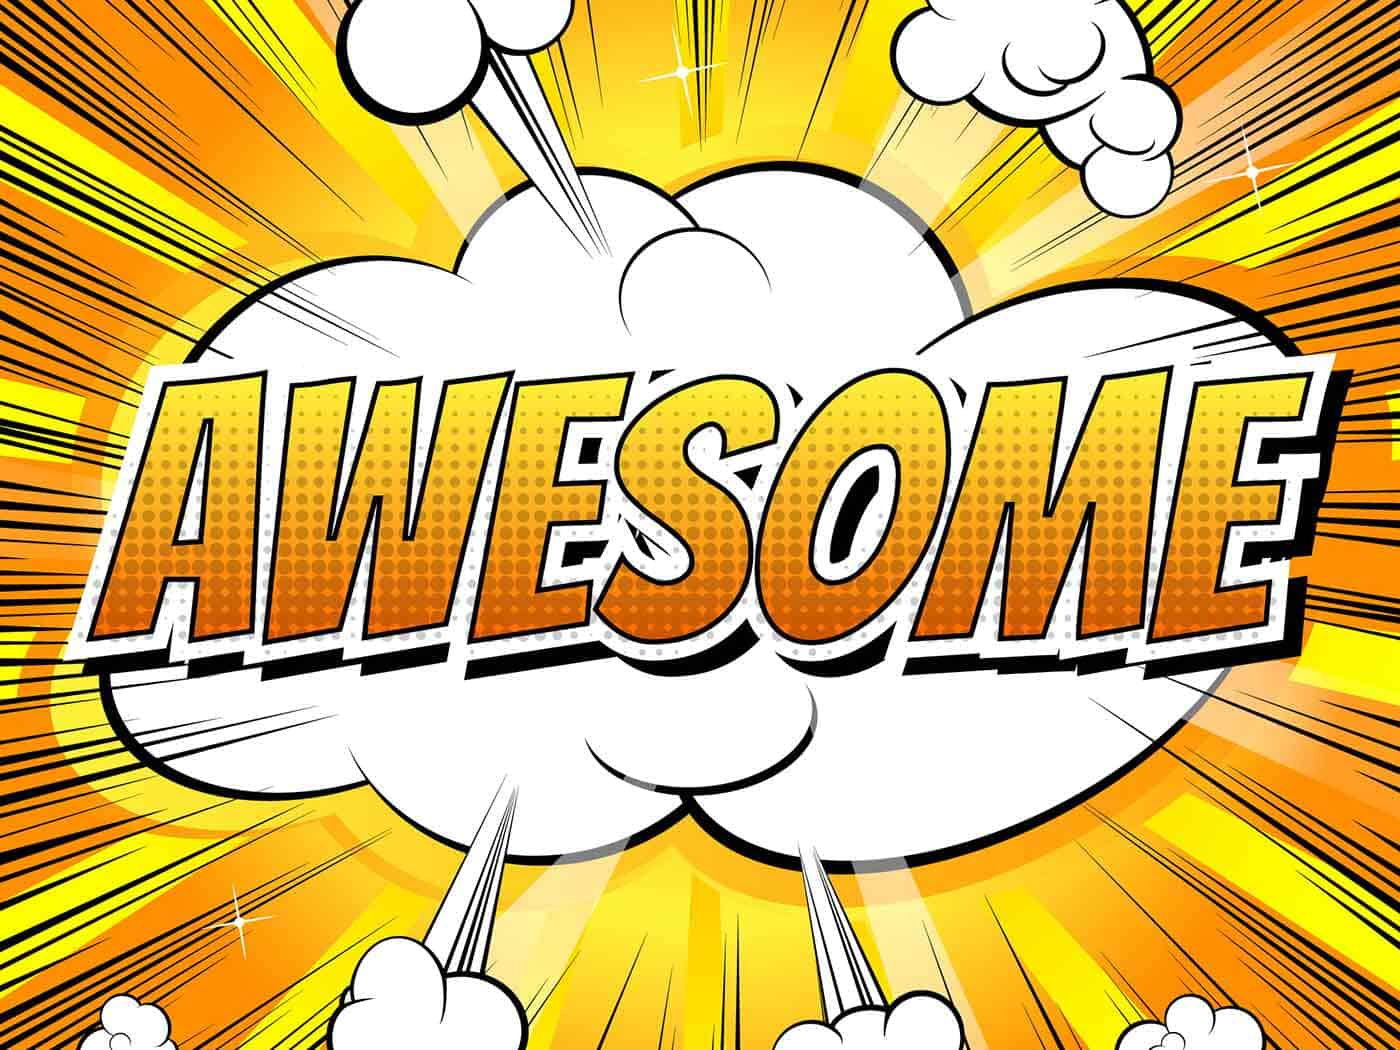 7-quick-tips-to-awesomise-your-website-content